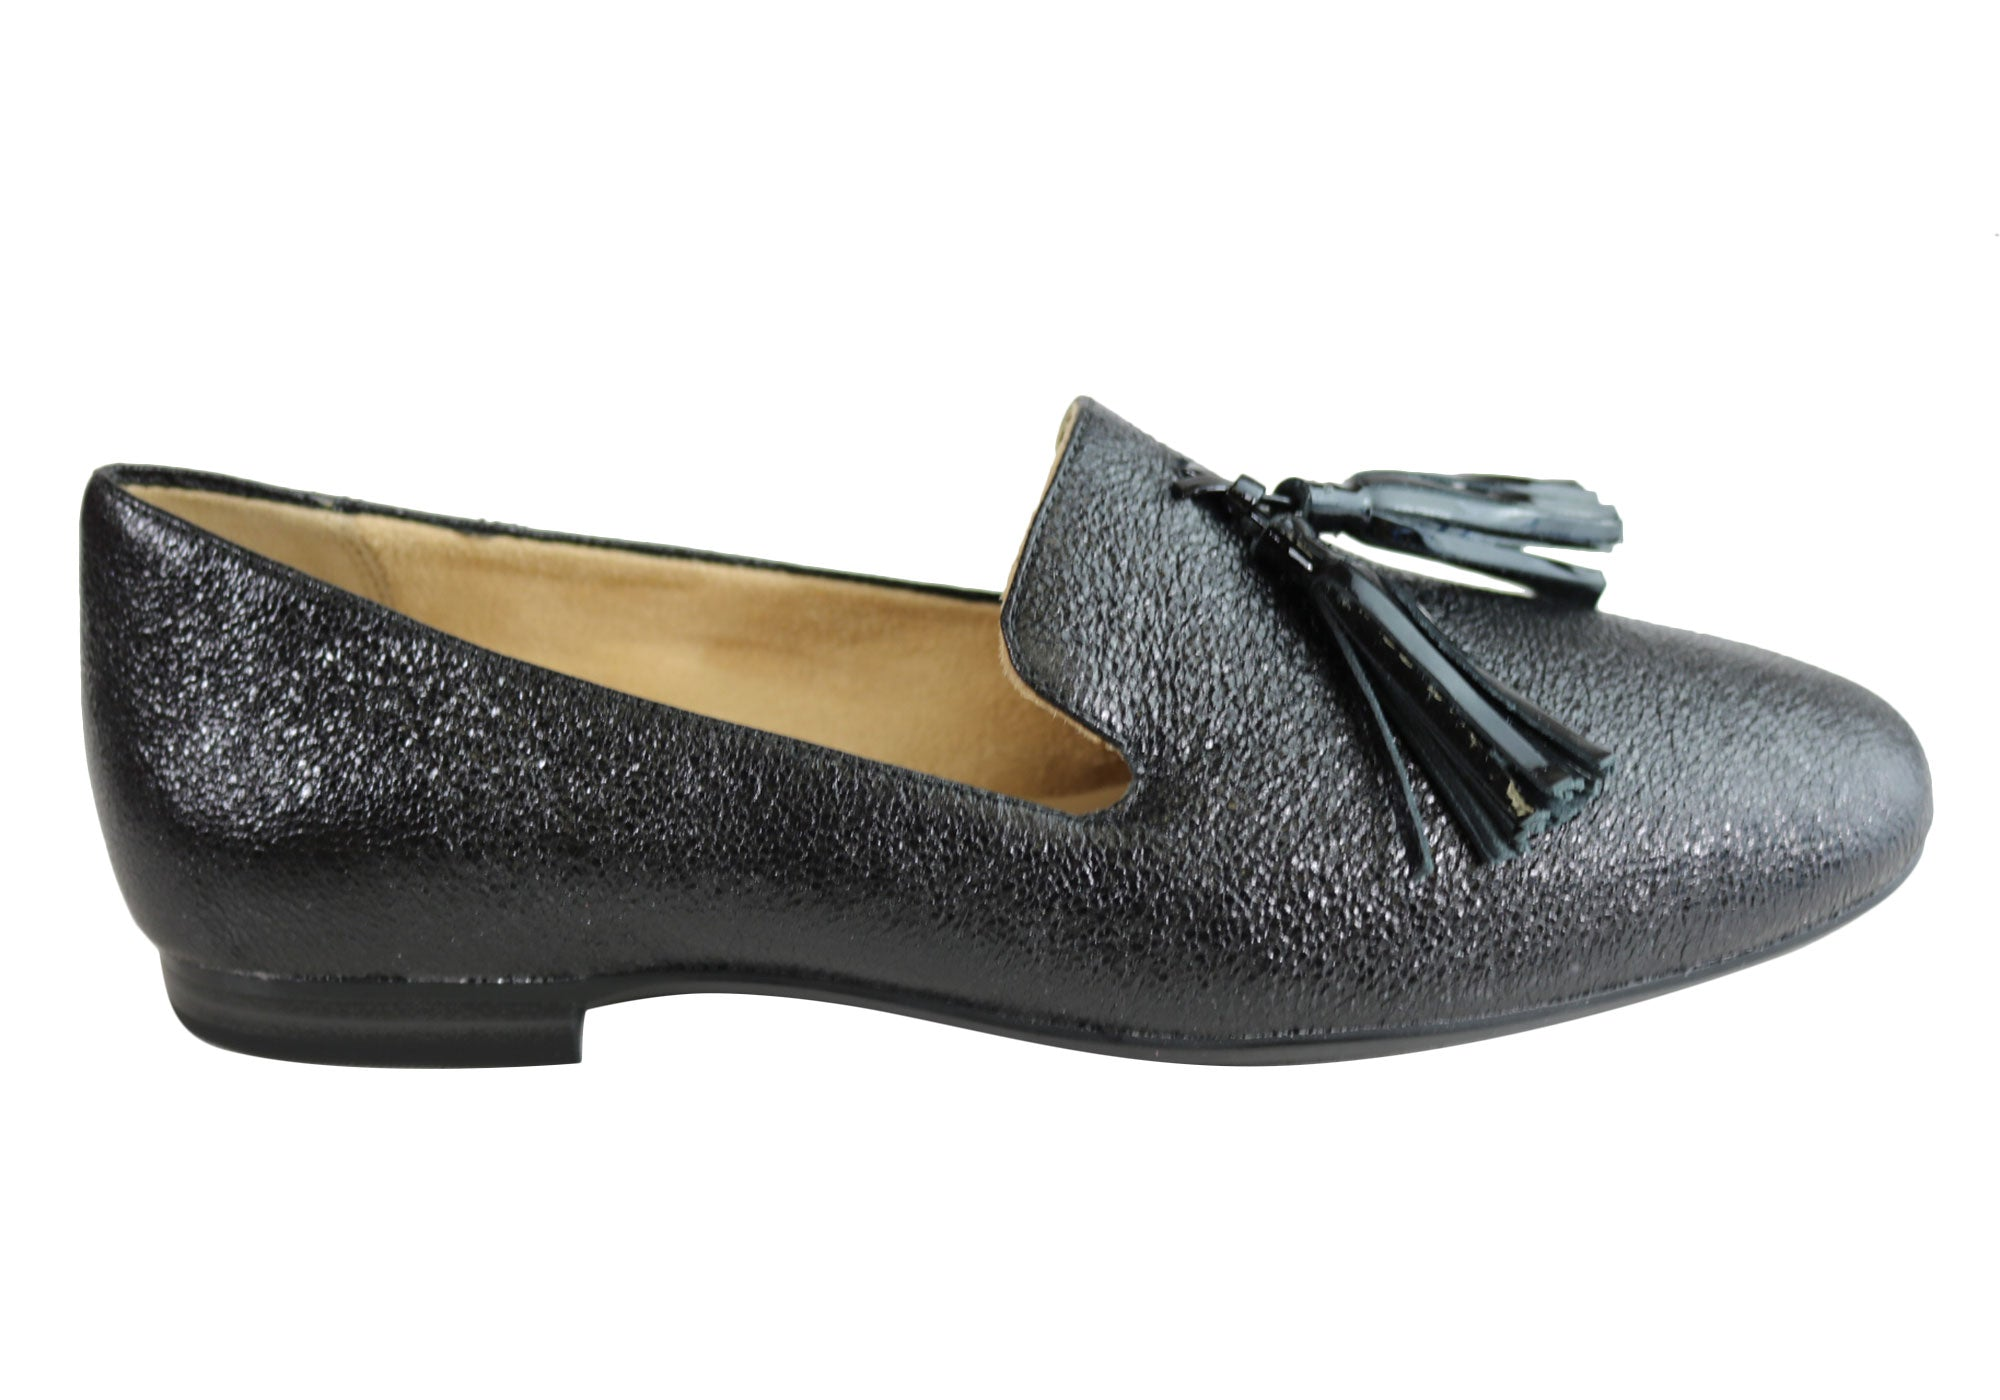 8743999ba8d Home Naturalizer Elly Womens Comfortable Fashion Flat Leather Loafer Shoes.  Black Sparkle ...